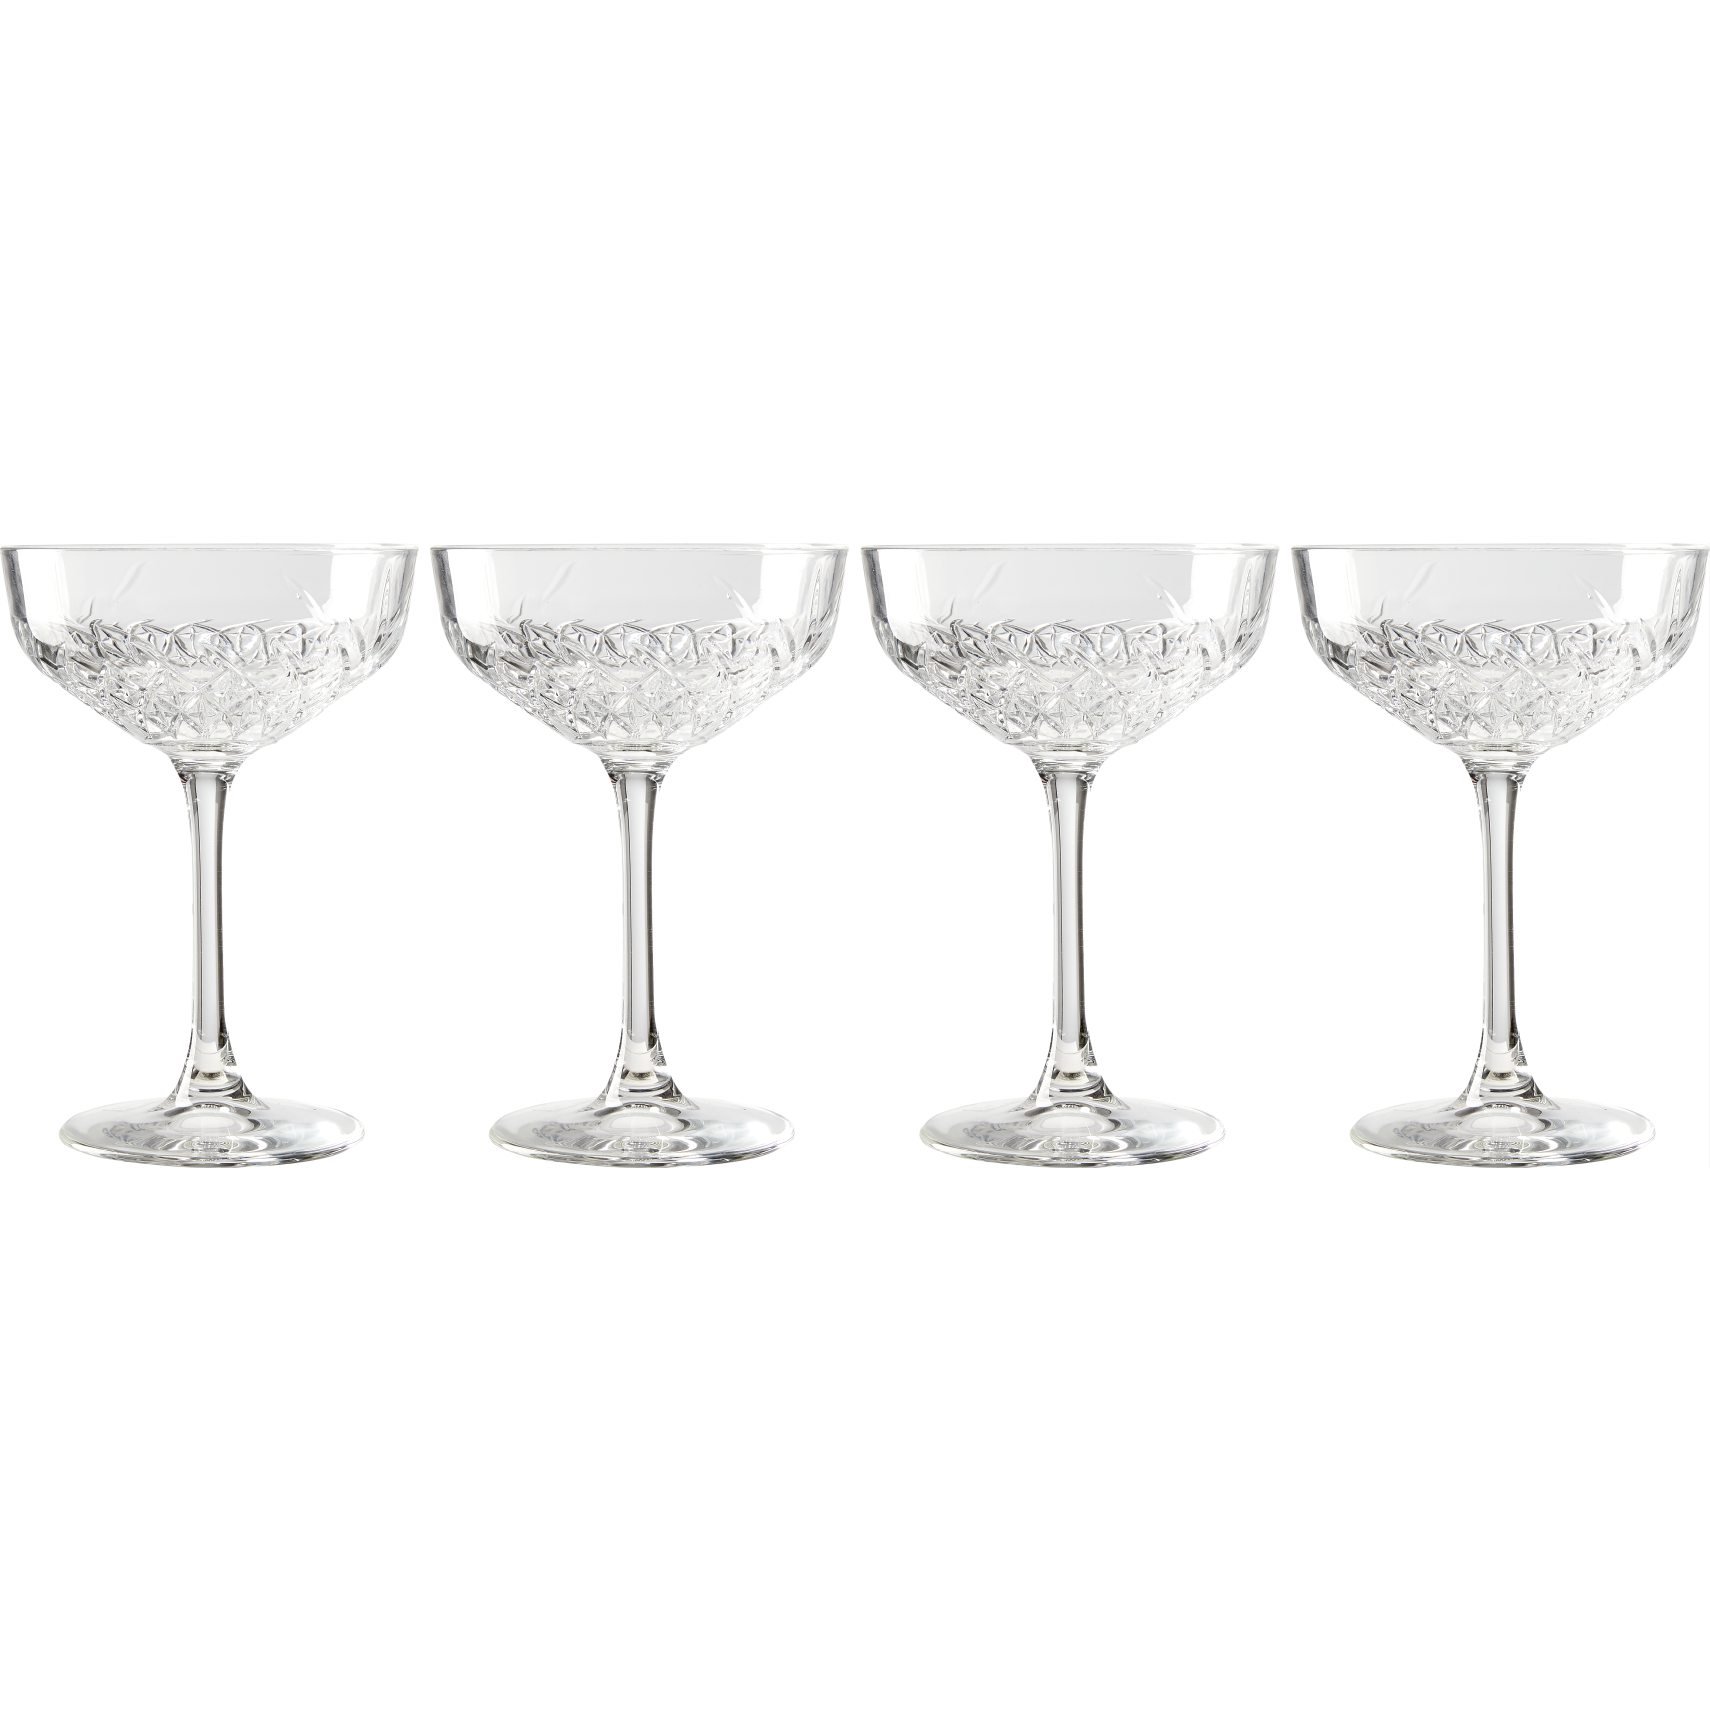 Demantur Cocktailglas - Klar glas og facetslebet mønster